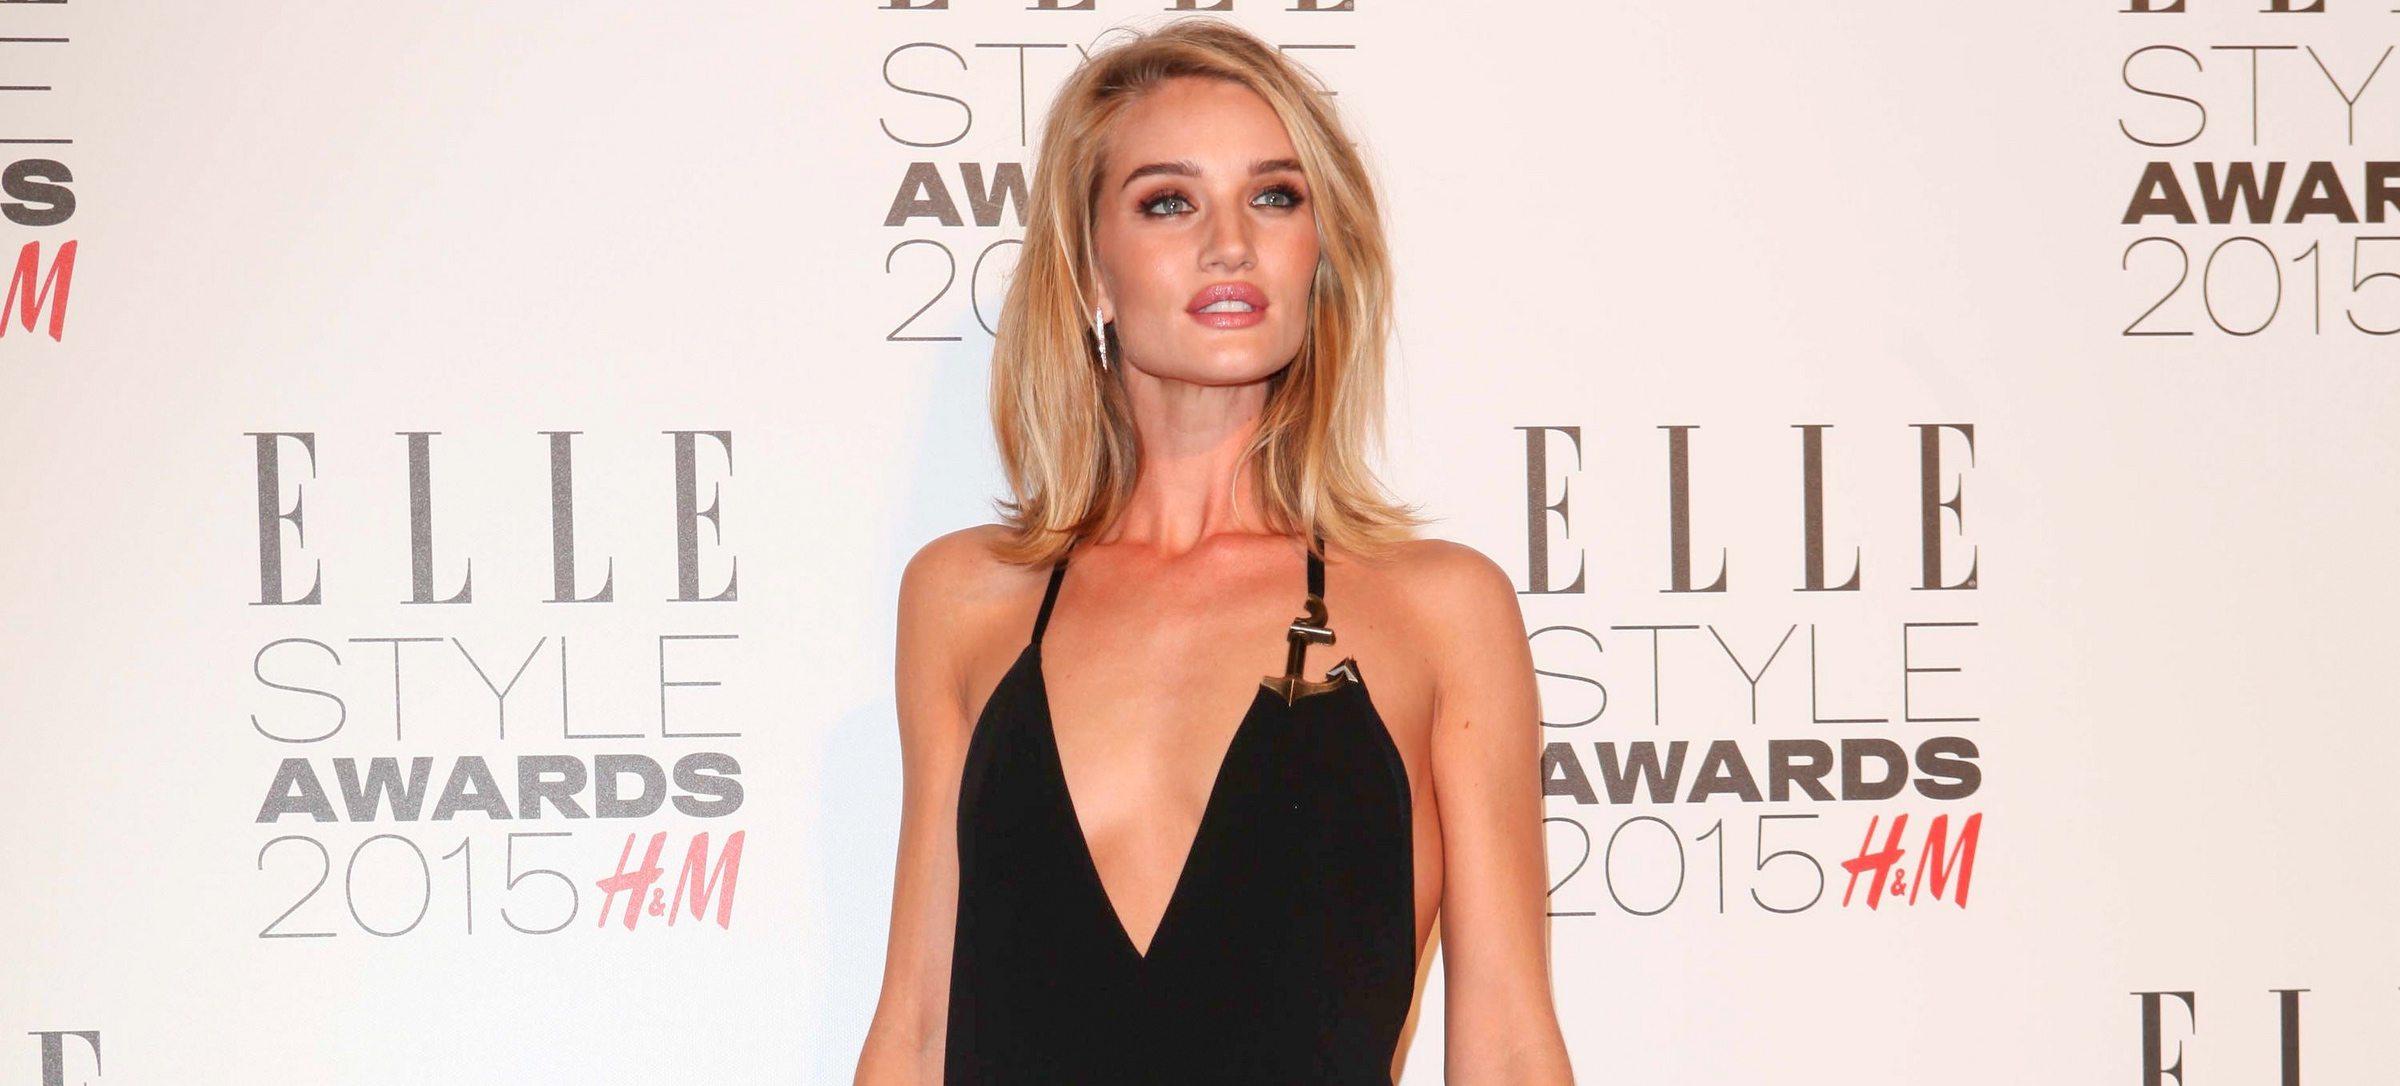 Rosie Huntington-Whiteley's Nightly Beauty Routine